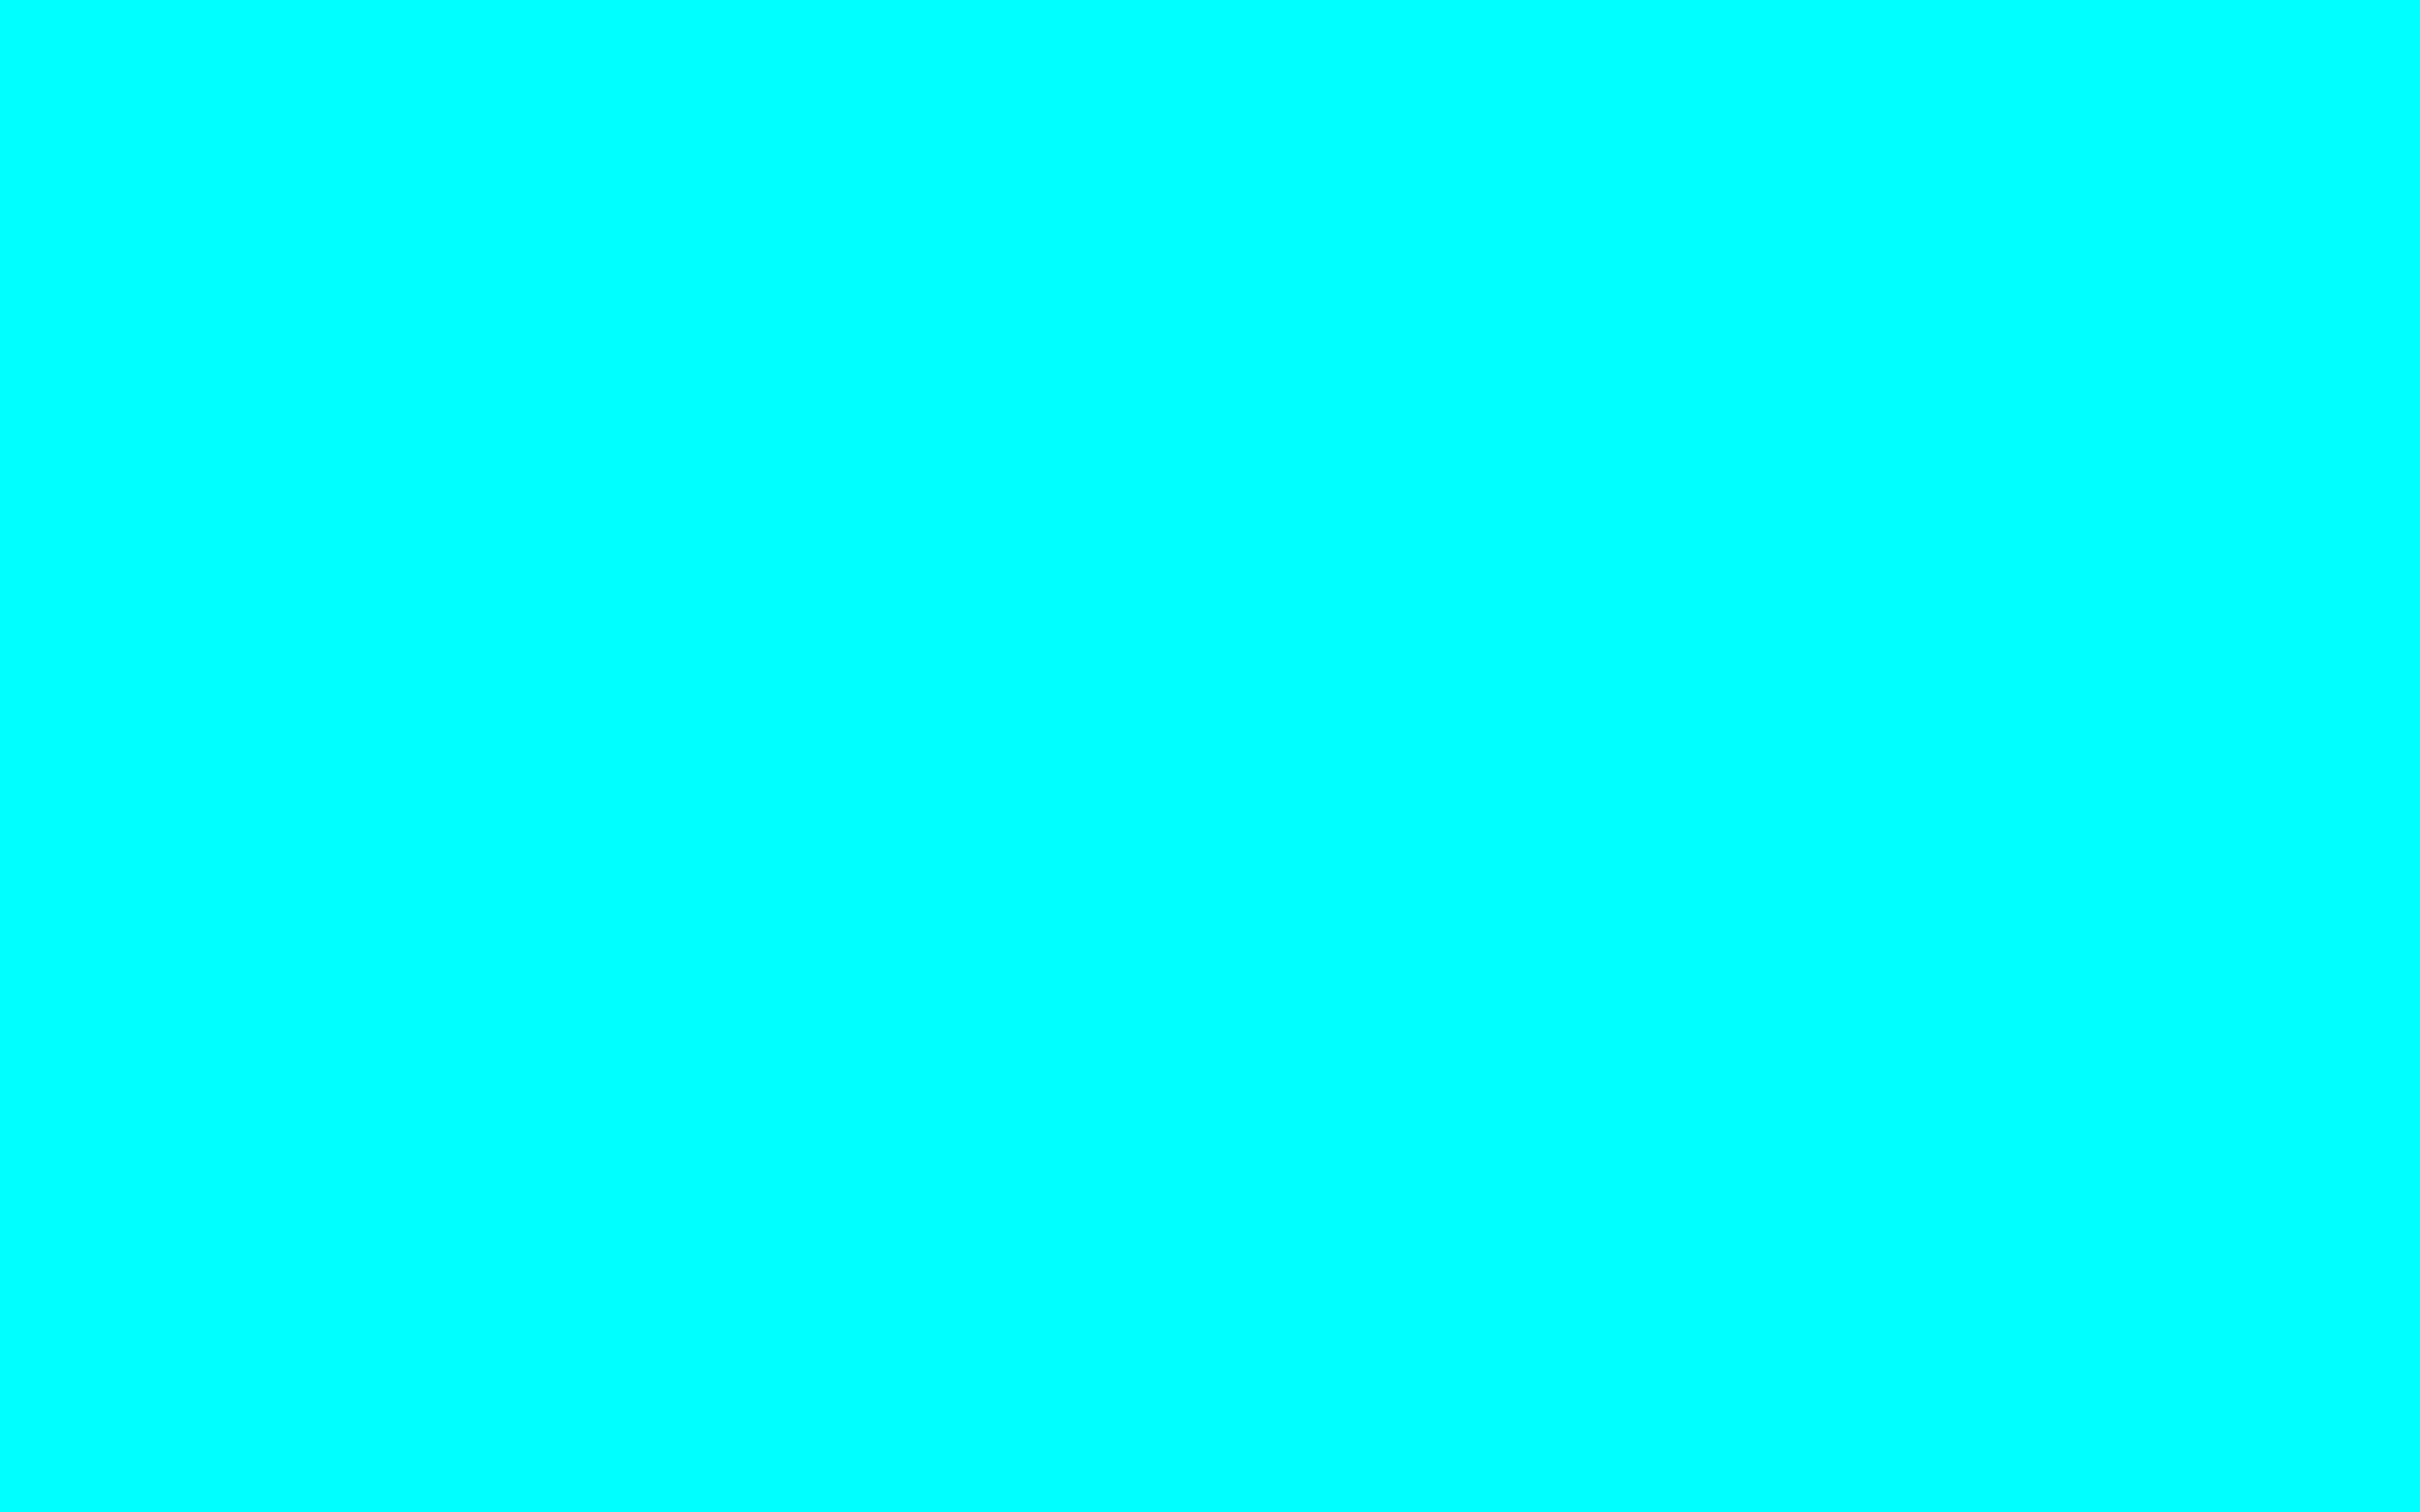 What color do you like? 2880x1800-electric-cyan-solid-color-background